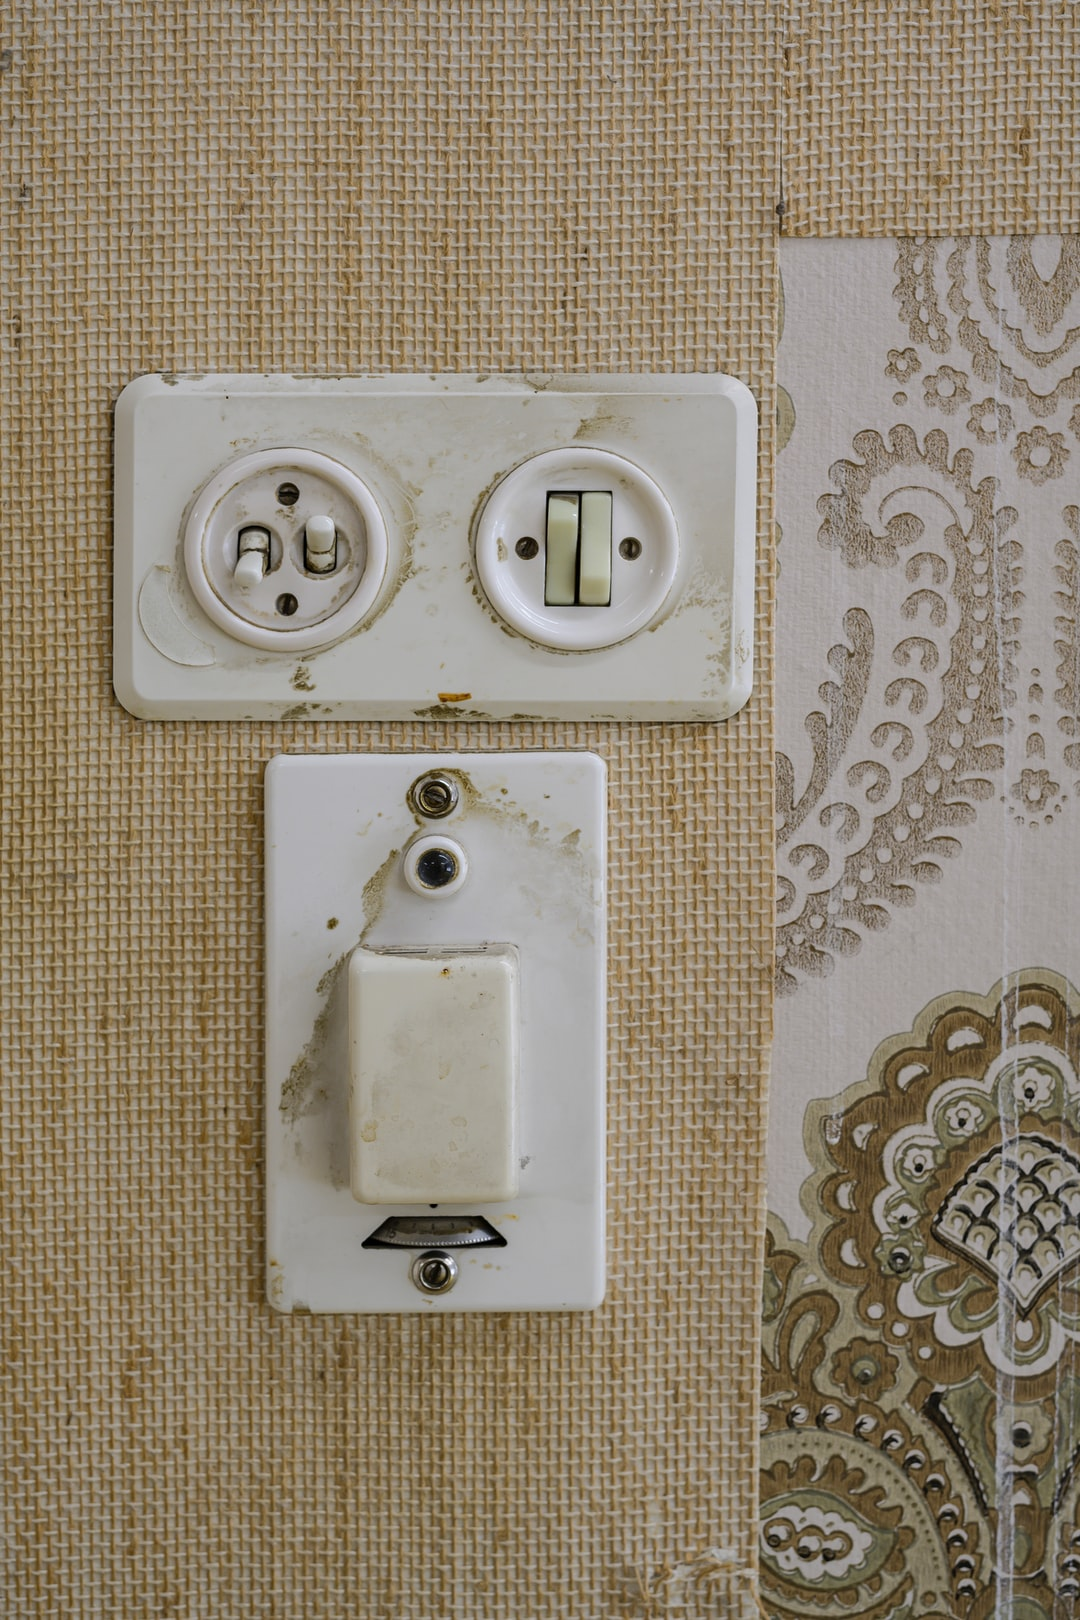 Light switch in a house shortly before demolition